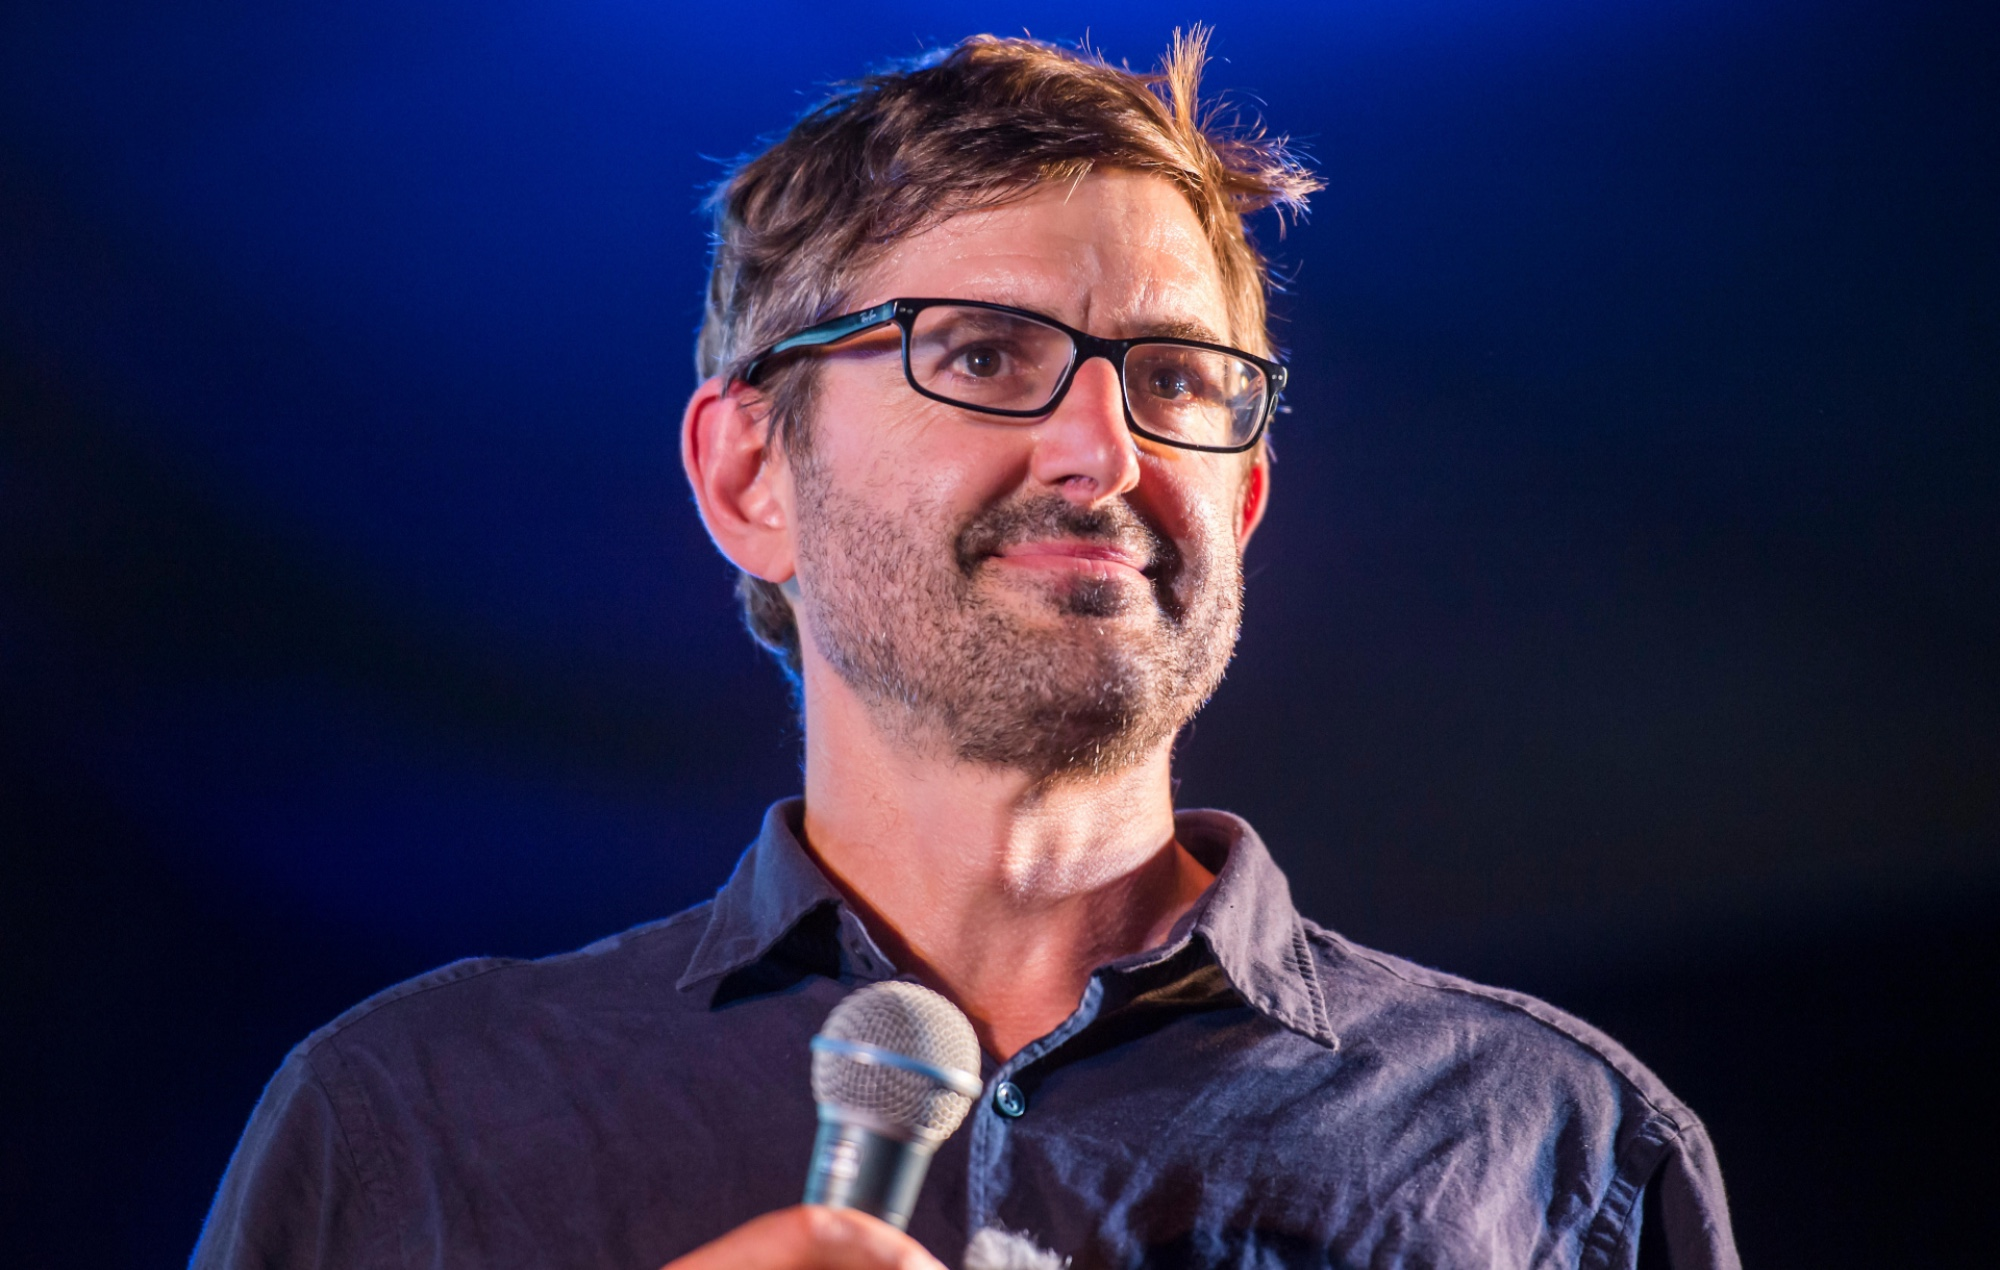 Louis Theroux's new documentary to explore US rap and hip-hop